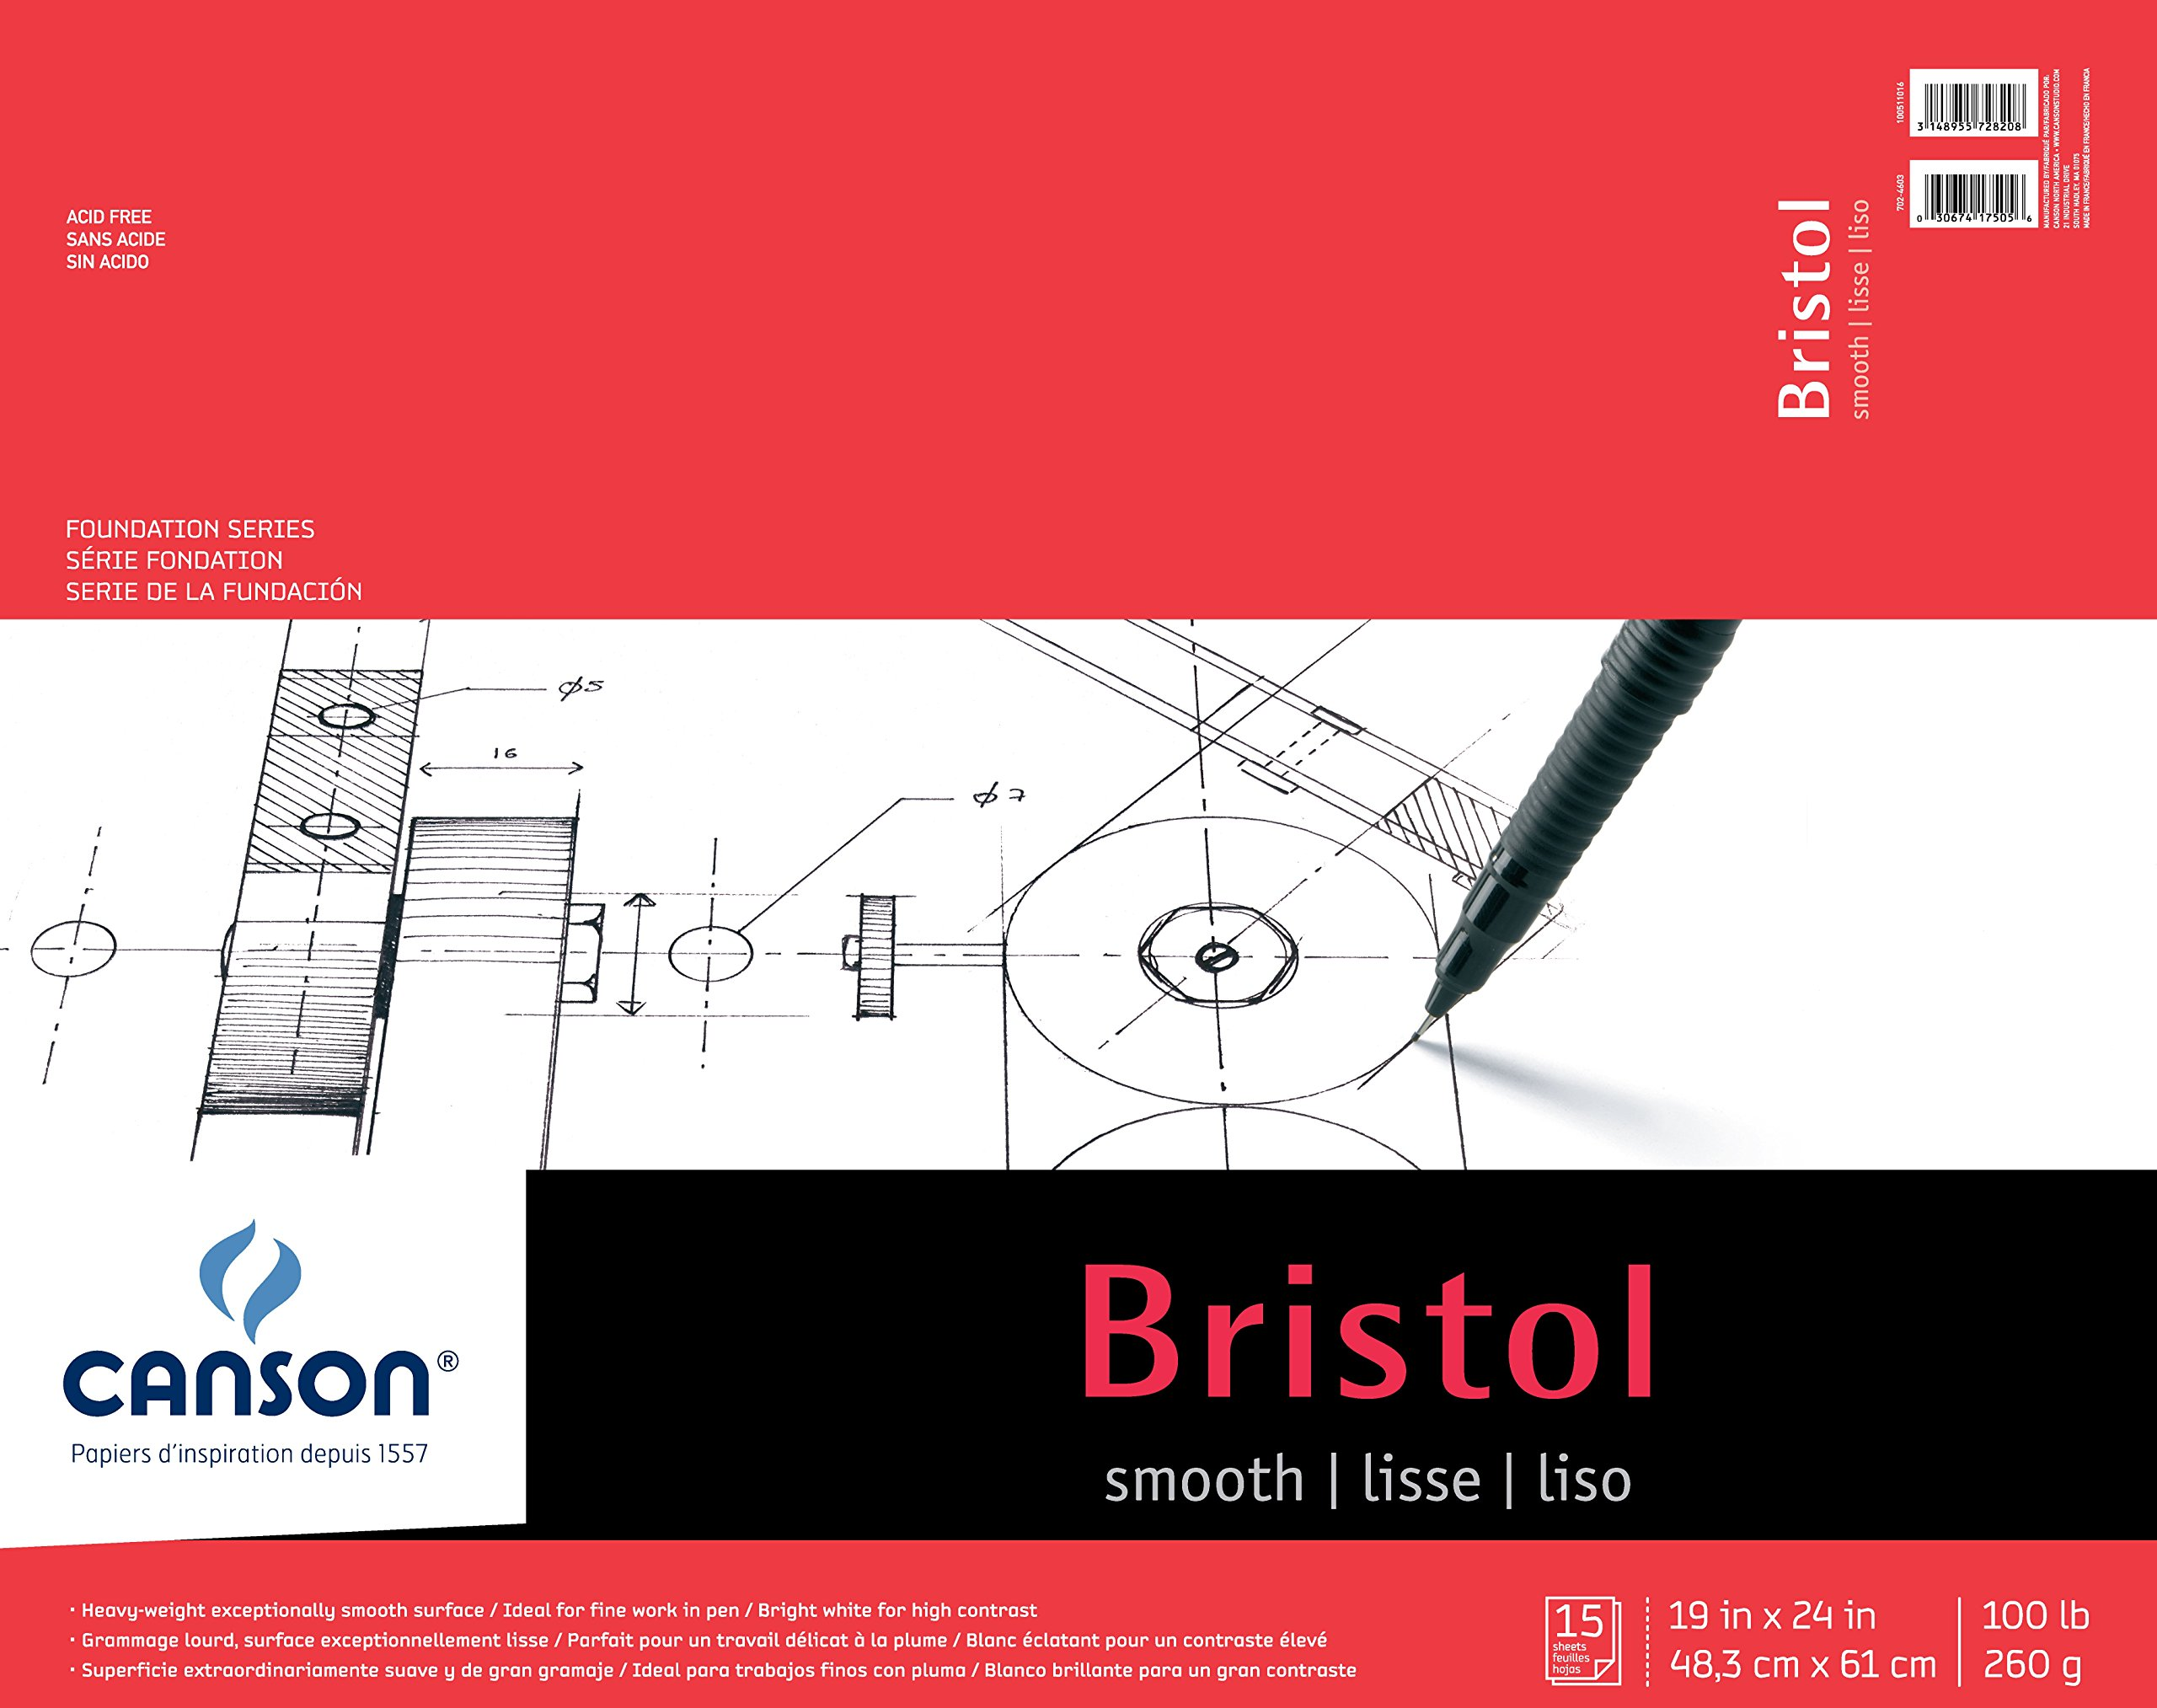 Canson Foundation Series Bristol Paper Pad, Heavyweight Paper for Pen, Smooth Finish, Fold Over, 100 Pound, 19 x 24 Inch, Bright White, 15 Sheets by Canson